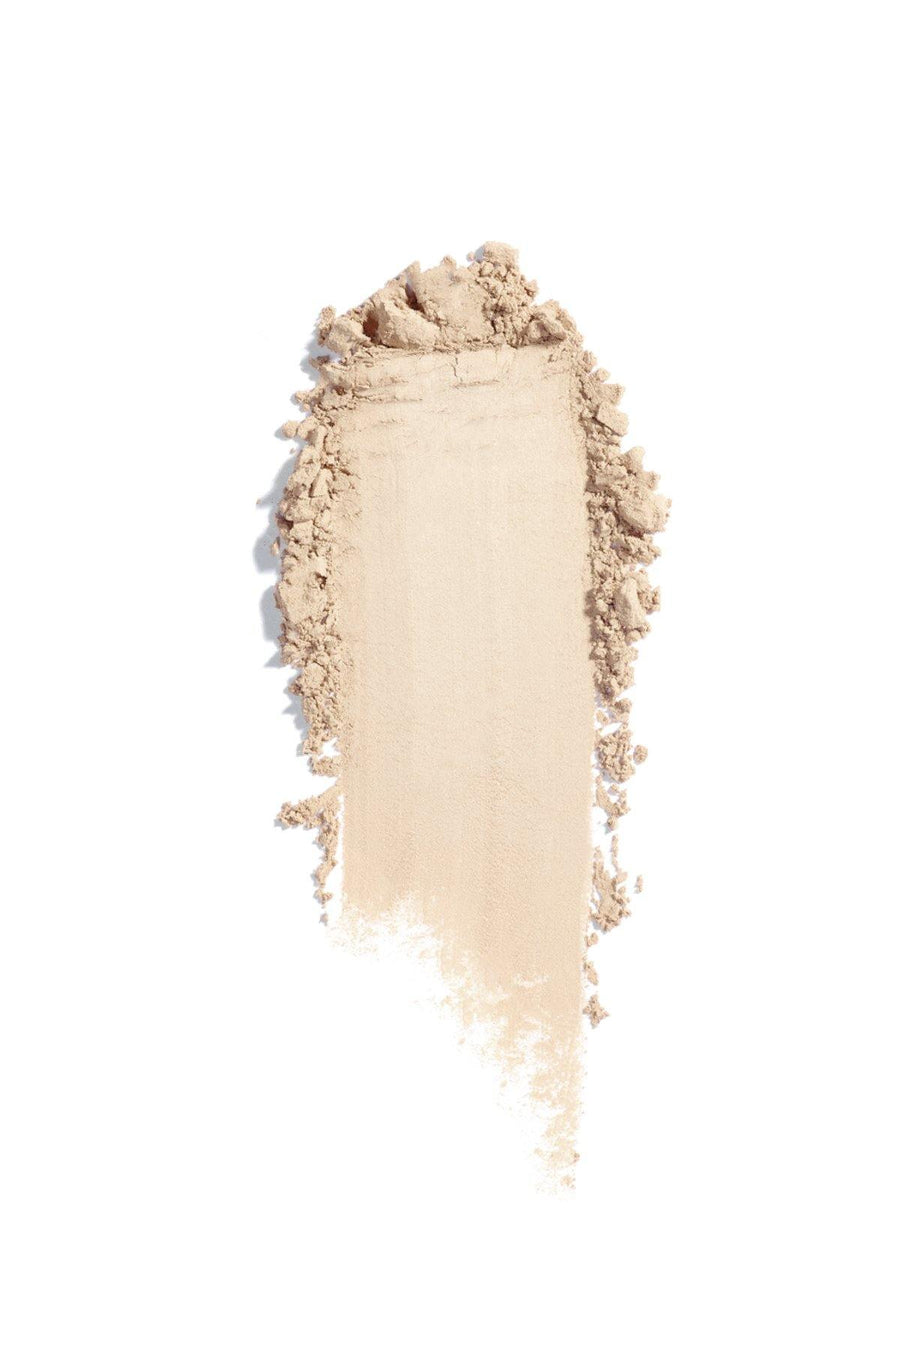 Mineral SPF 15 Foundation #1 - Fairest - Blend Mineral Cosmetics